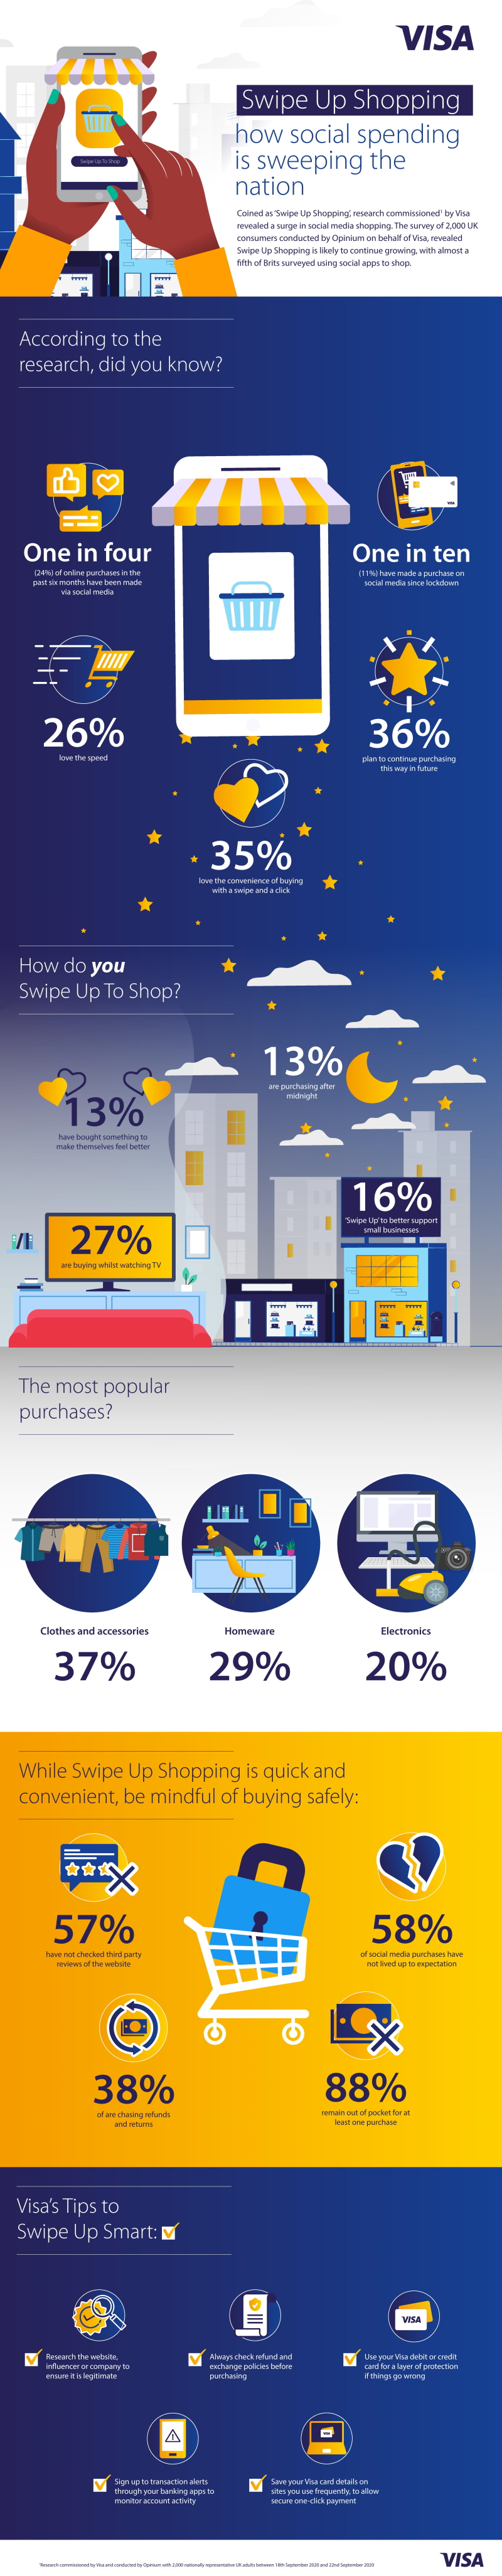 Swipe up shopping infographic